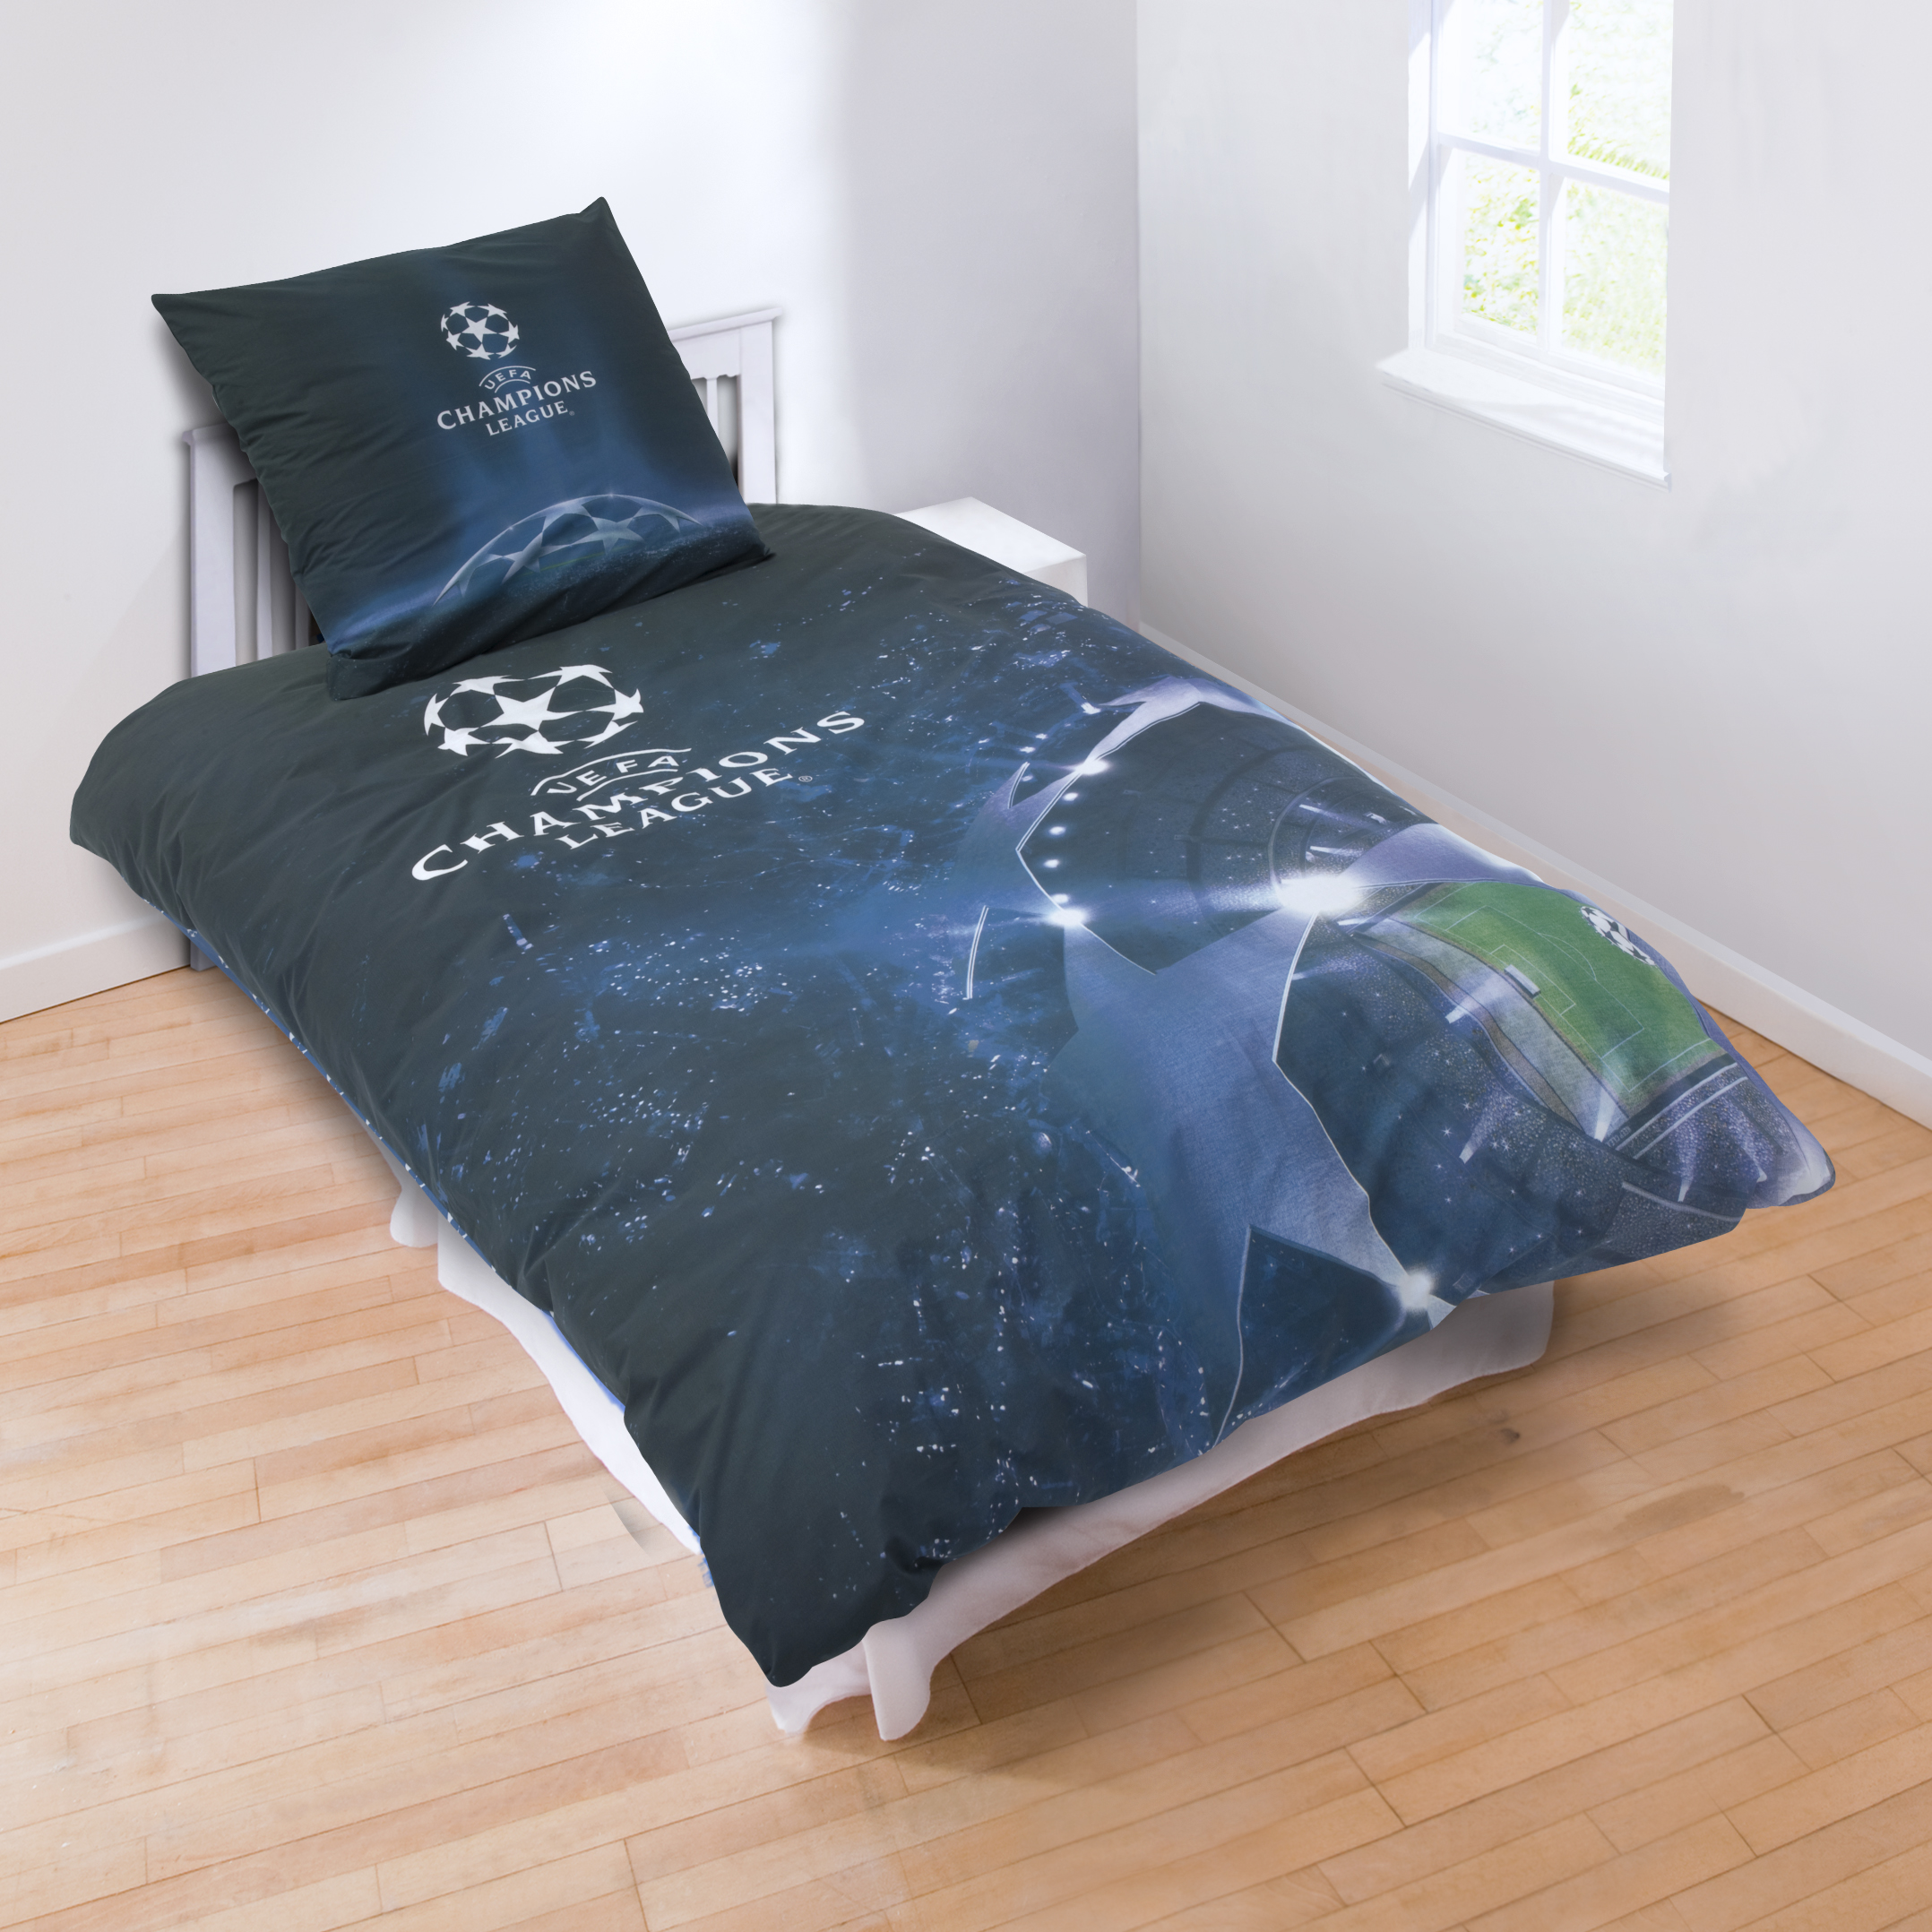 UEFA Champions League Photo Print Duvet - Single - 140 x 200